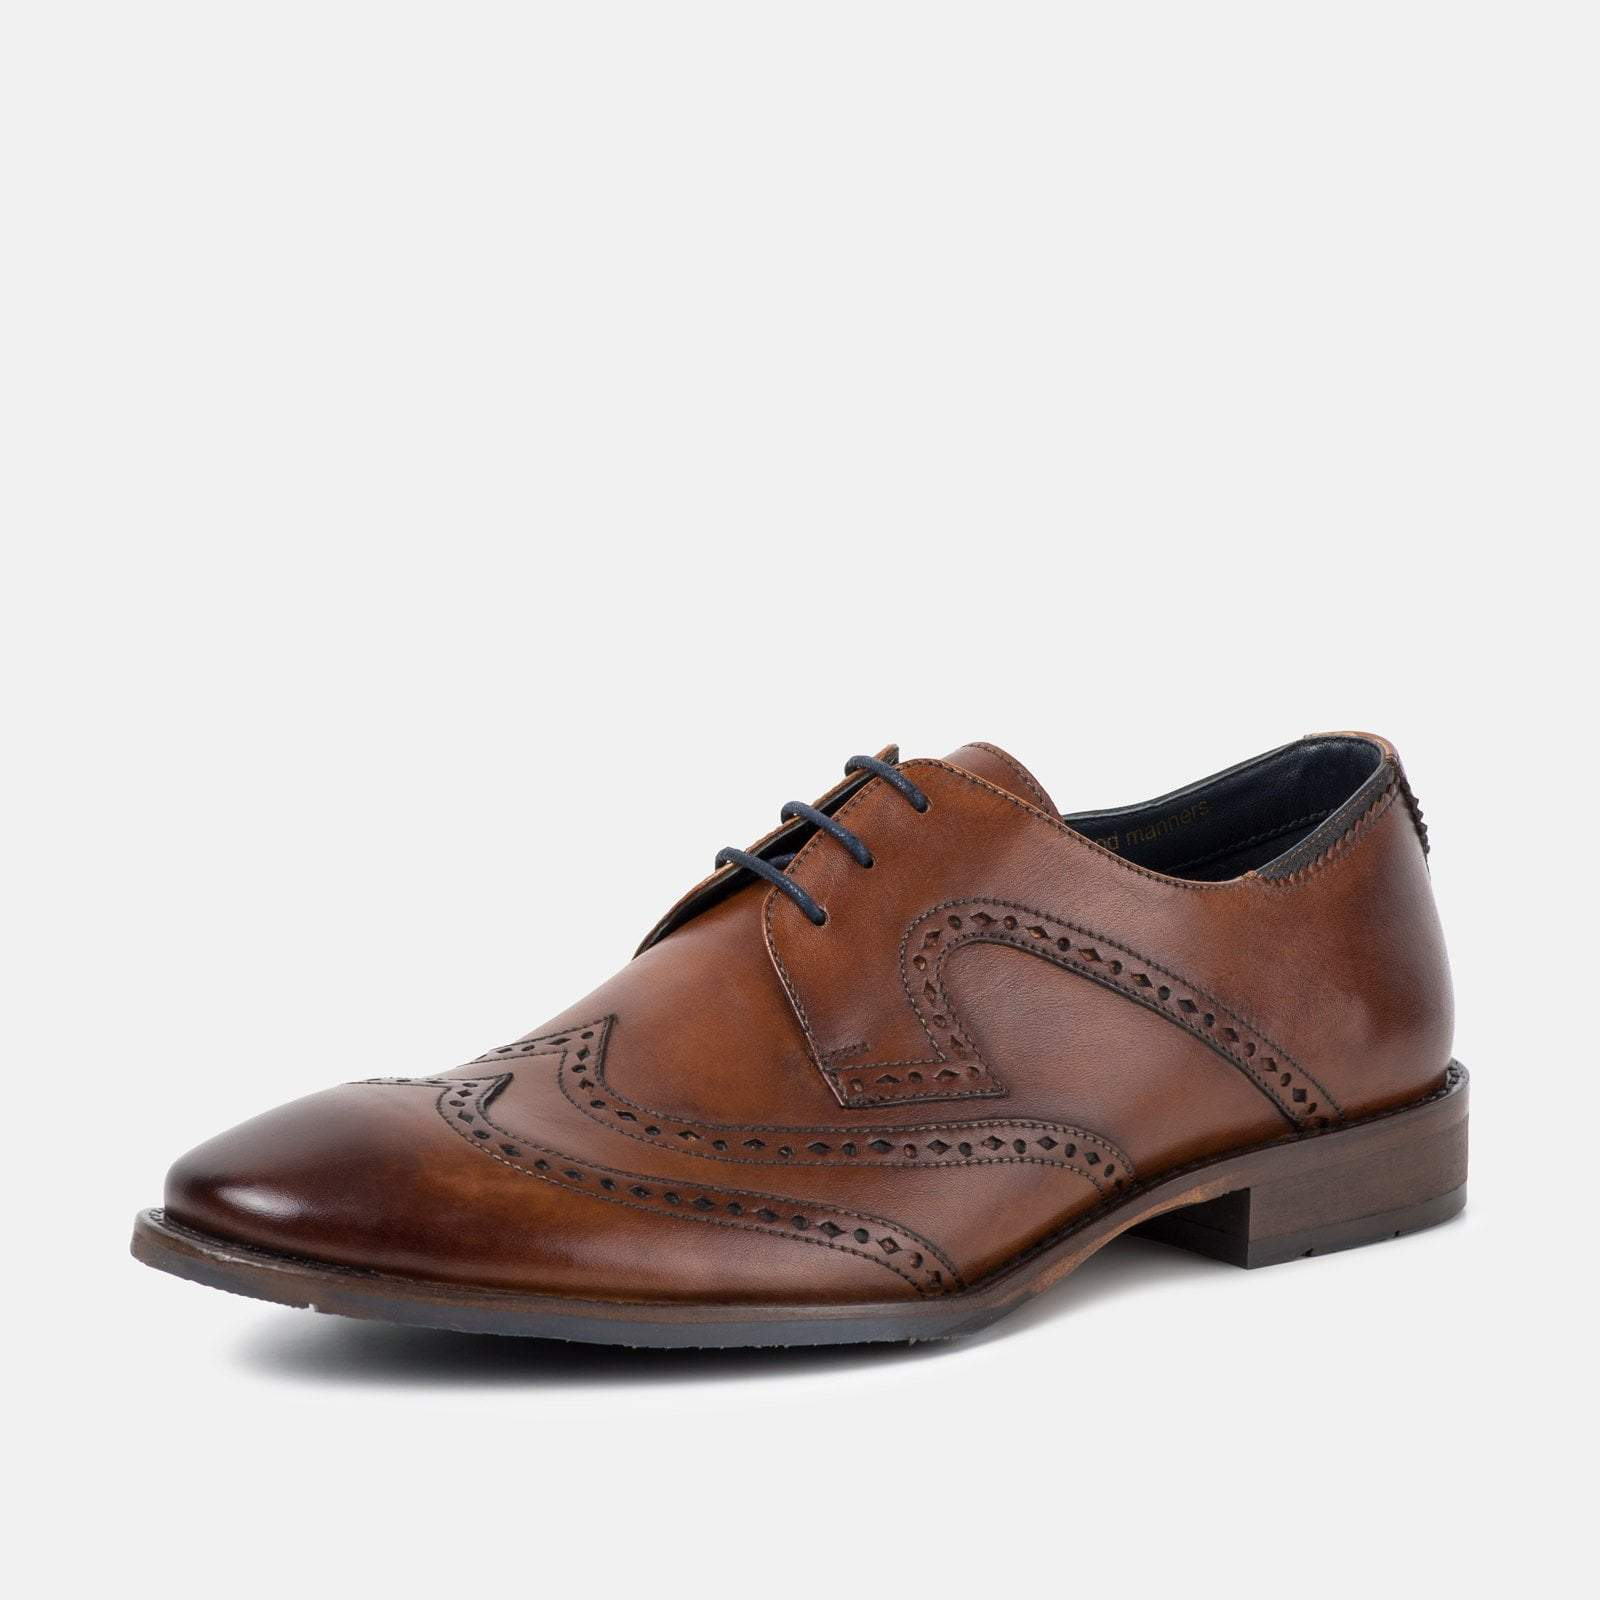 Goodwin Smith Footwear UK 6 / EURO 39 / US 7 / Tan / Leather THORNTON TAN